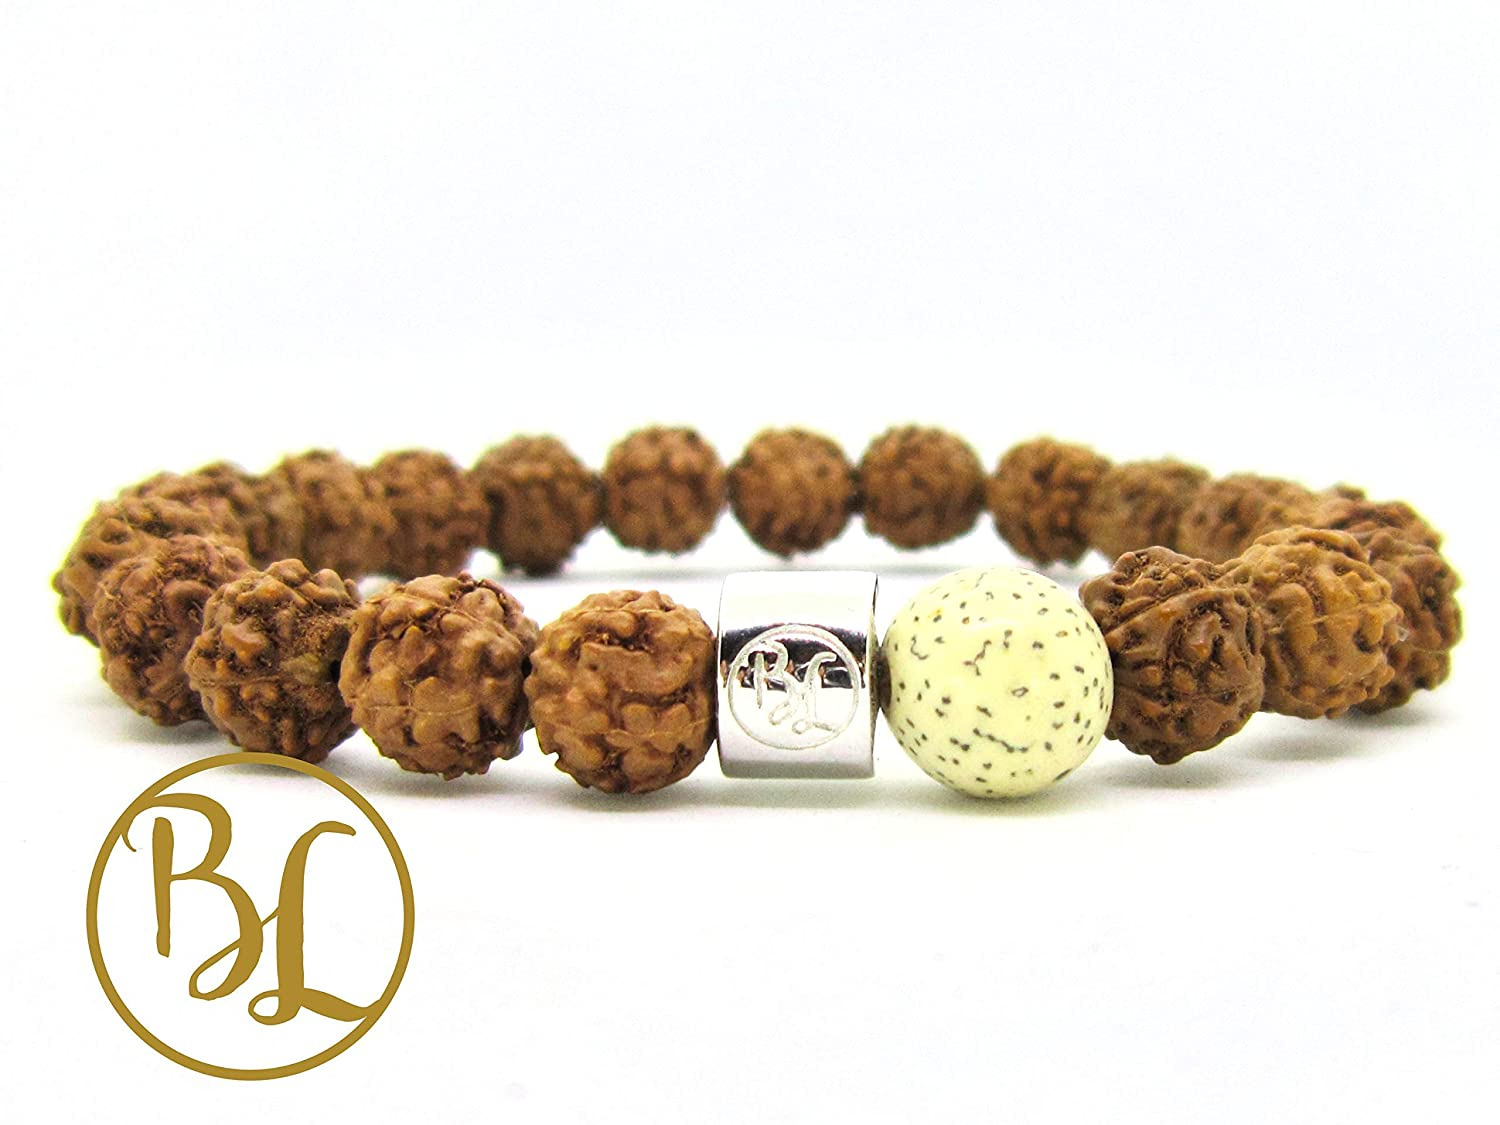 Amazon.com: Genuine Lotus and Bodhi Seed Mala Bracelet ...